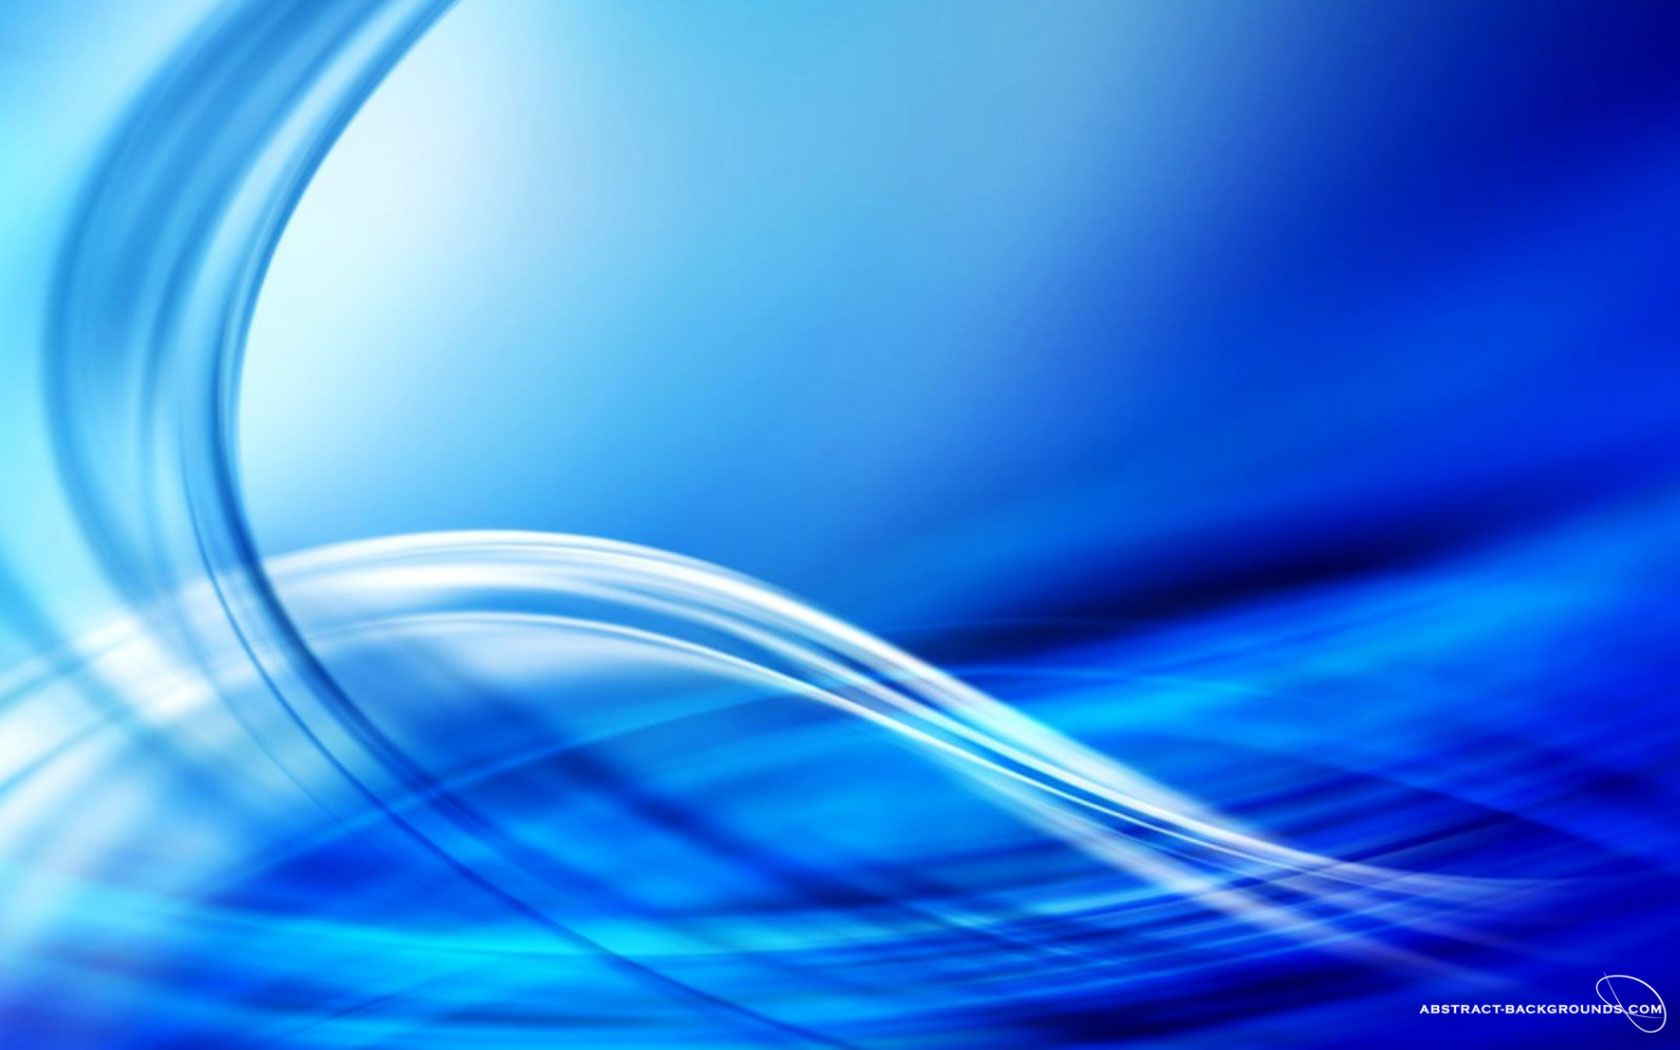 Blue Cool Abstract Backgrounds Free Wallpaper 絵の練習 絵